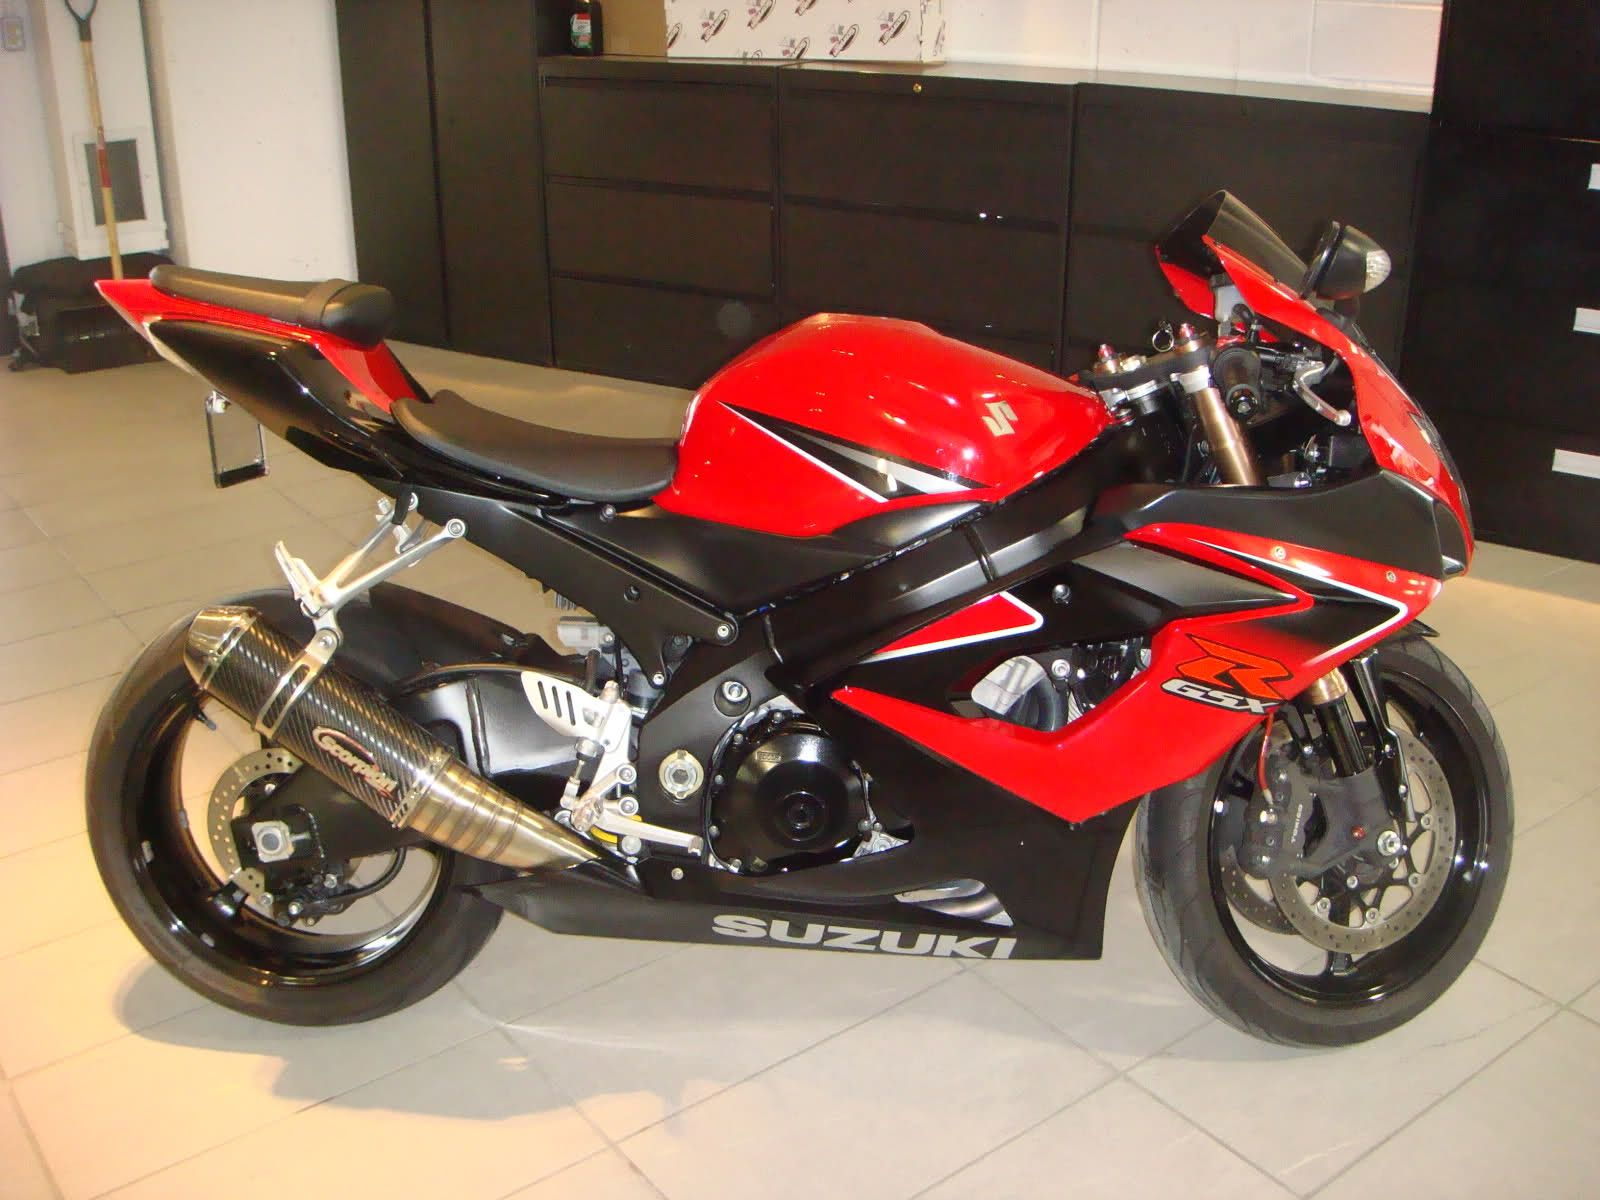 2006 suzuki gsxr 1000 thread fs 2006 suzuki gsxr 1000 red black 7900 like to have. Black Bedroom Furniture Sets. Home Design Ideas